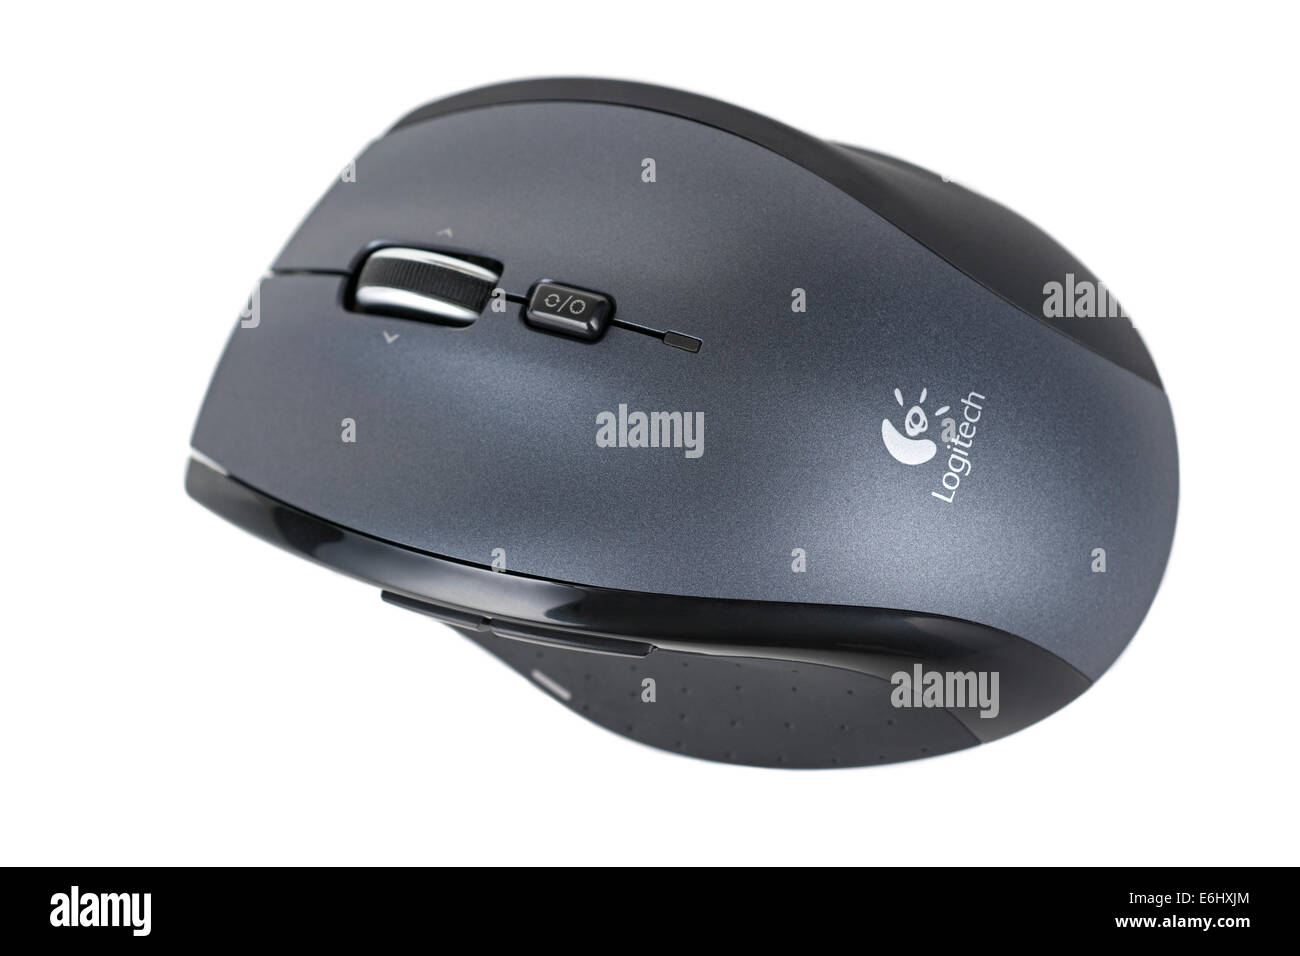 Wireless Mouse, Laser Optical Mouse, Logitech - Stock Image